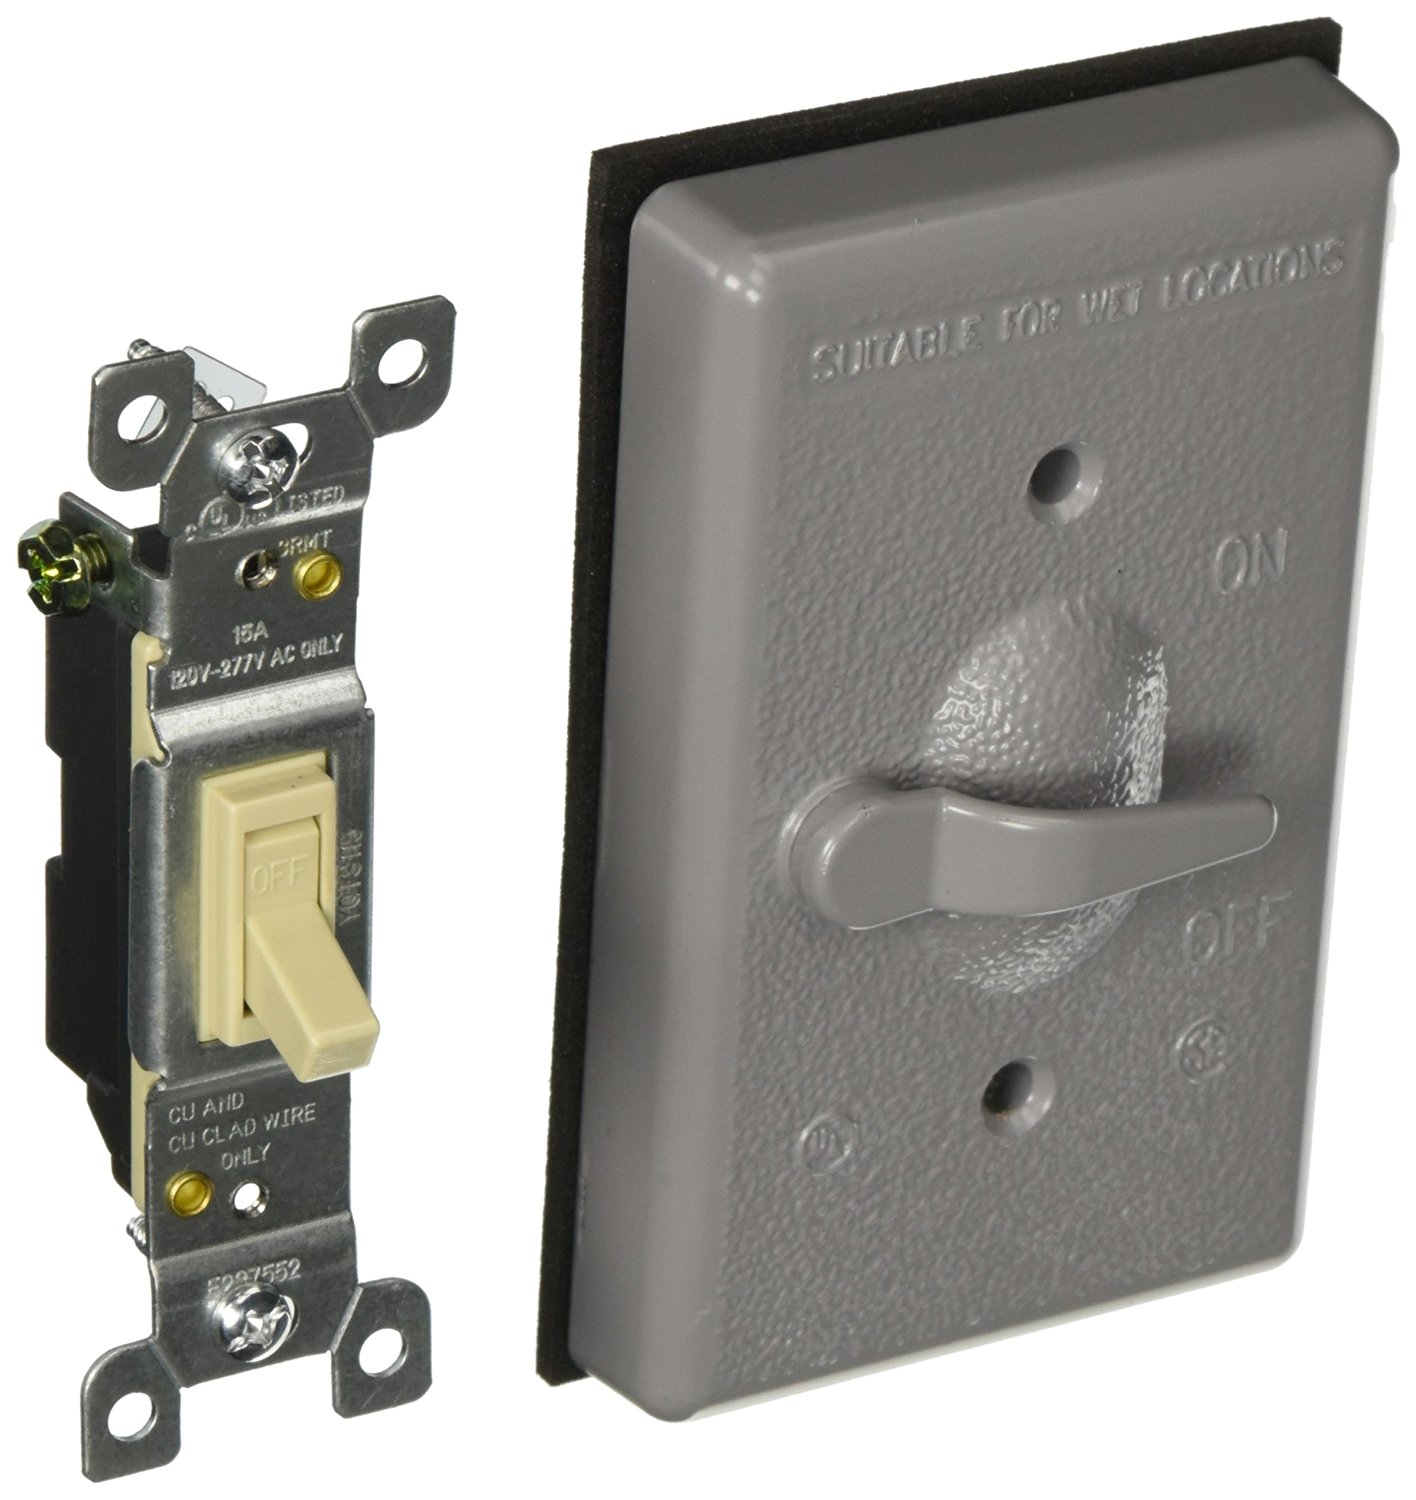 Cheap Weatherproof Light Switch Cover, find Weatherproof Light ...